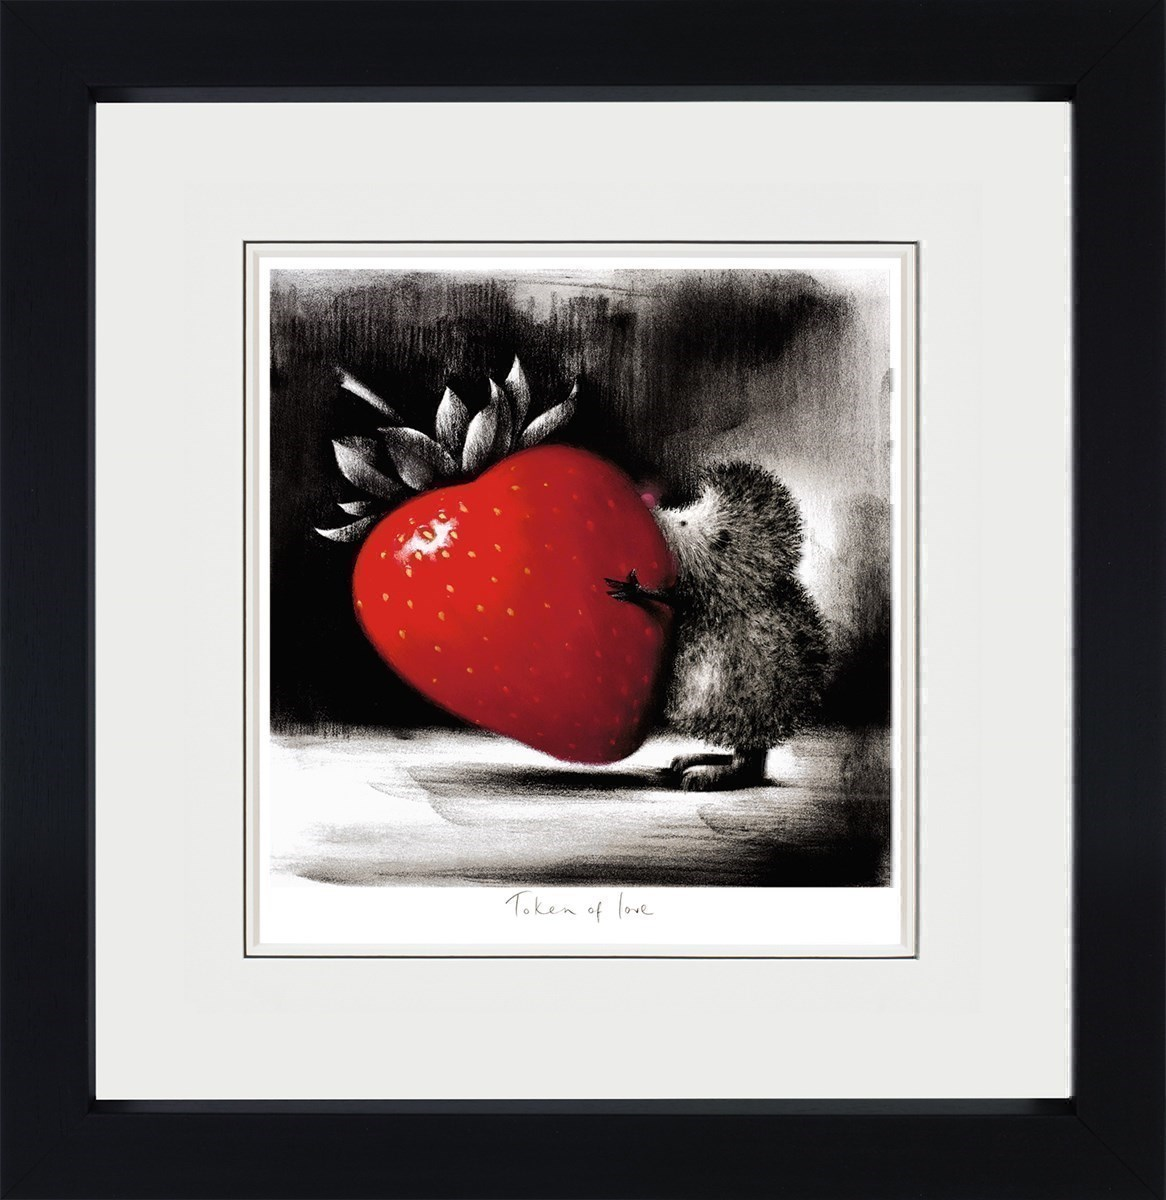 Token of Love by Doug Hyde - Limited Edition on Paper sized 12x12 inches. Available from Whitewall Galleries